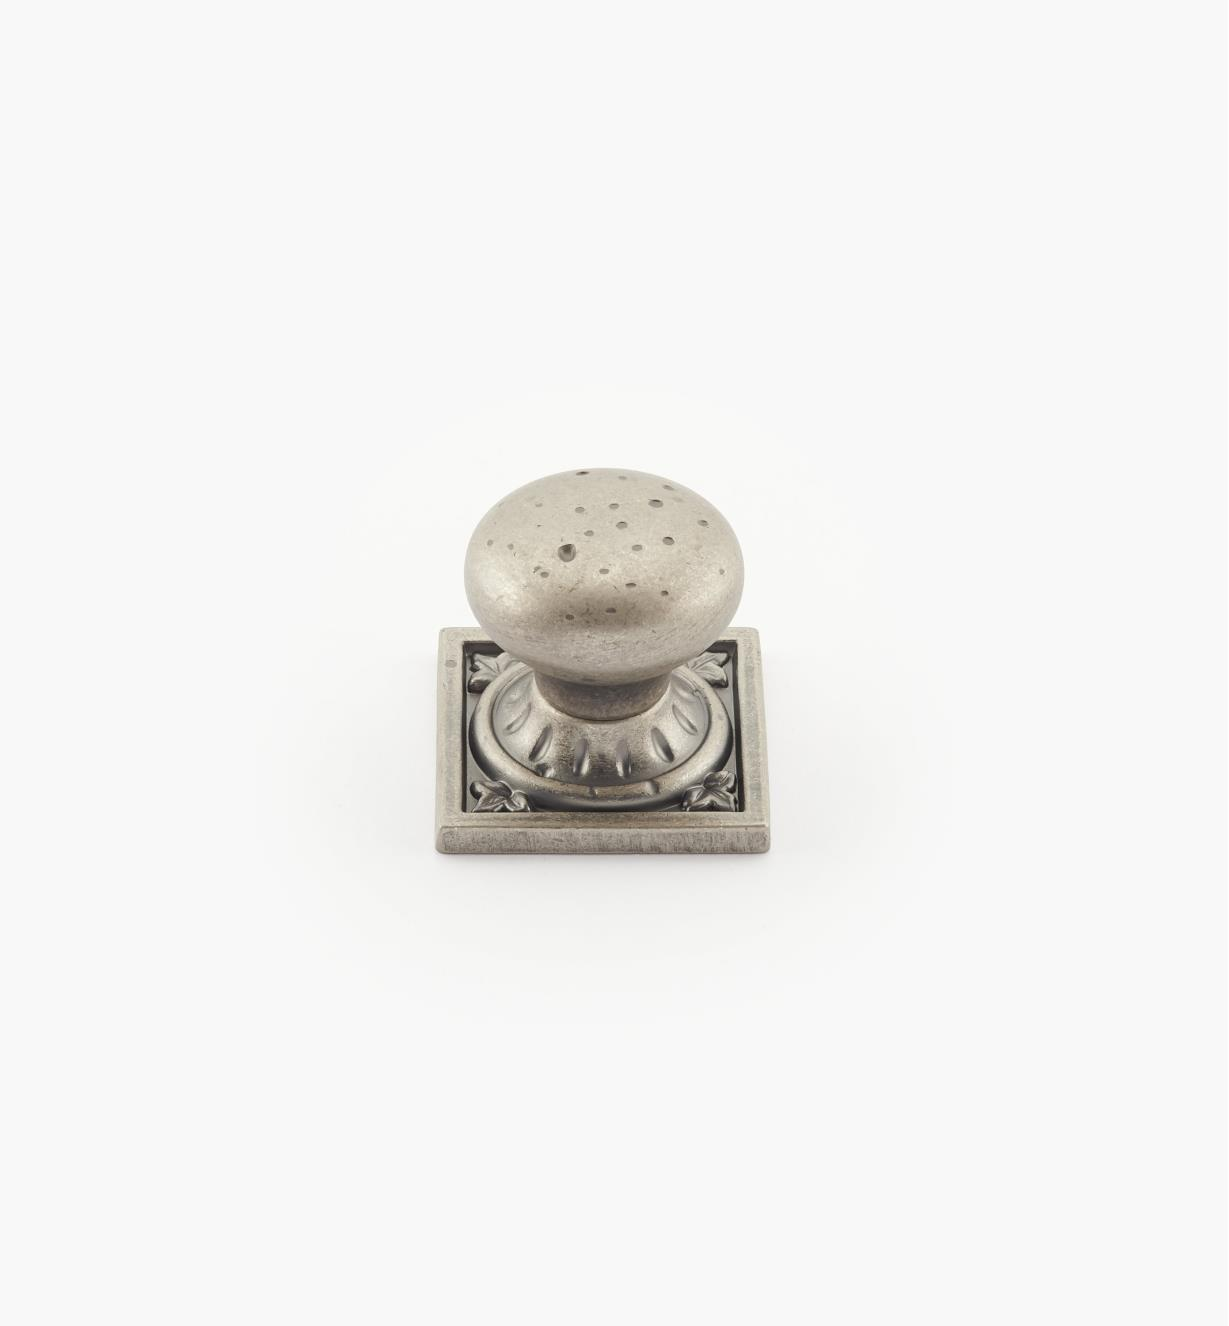 "02A2633 - Ambrosia 1 1/4"" x 1 1/4"" Weathered Nickel Square Knob"